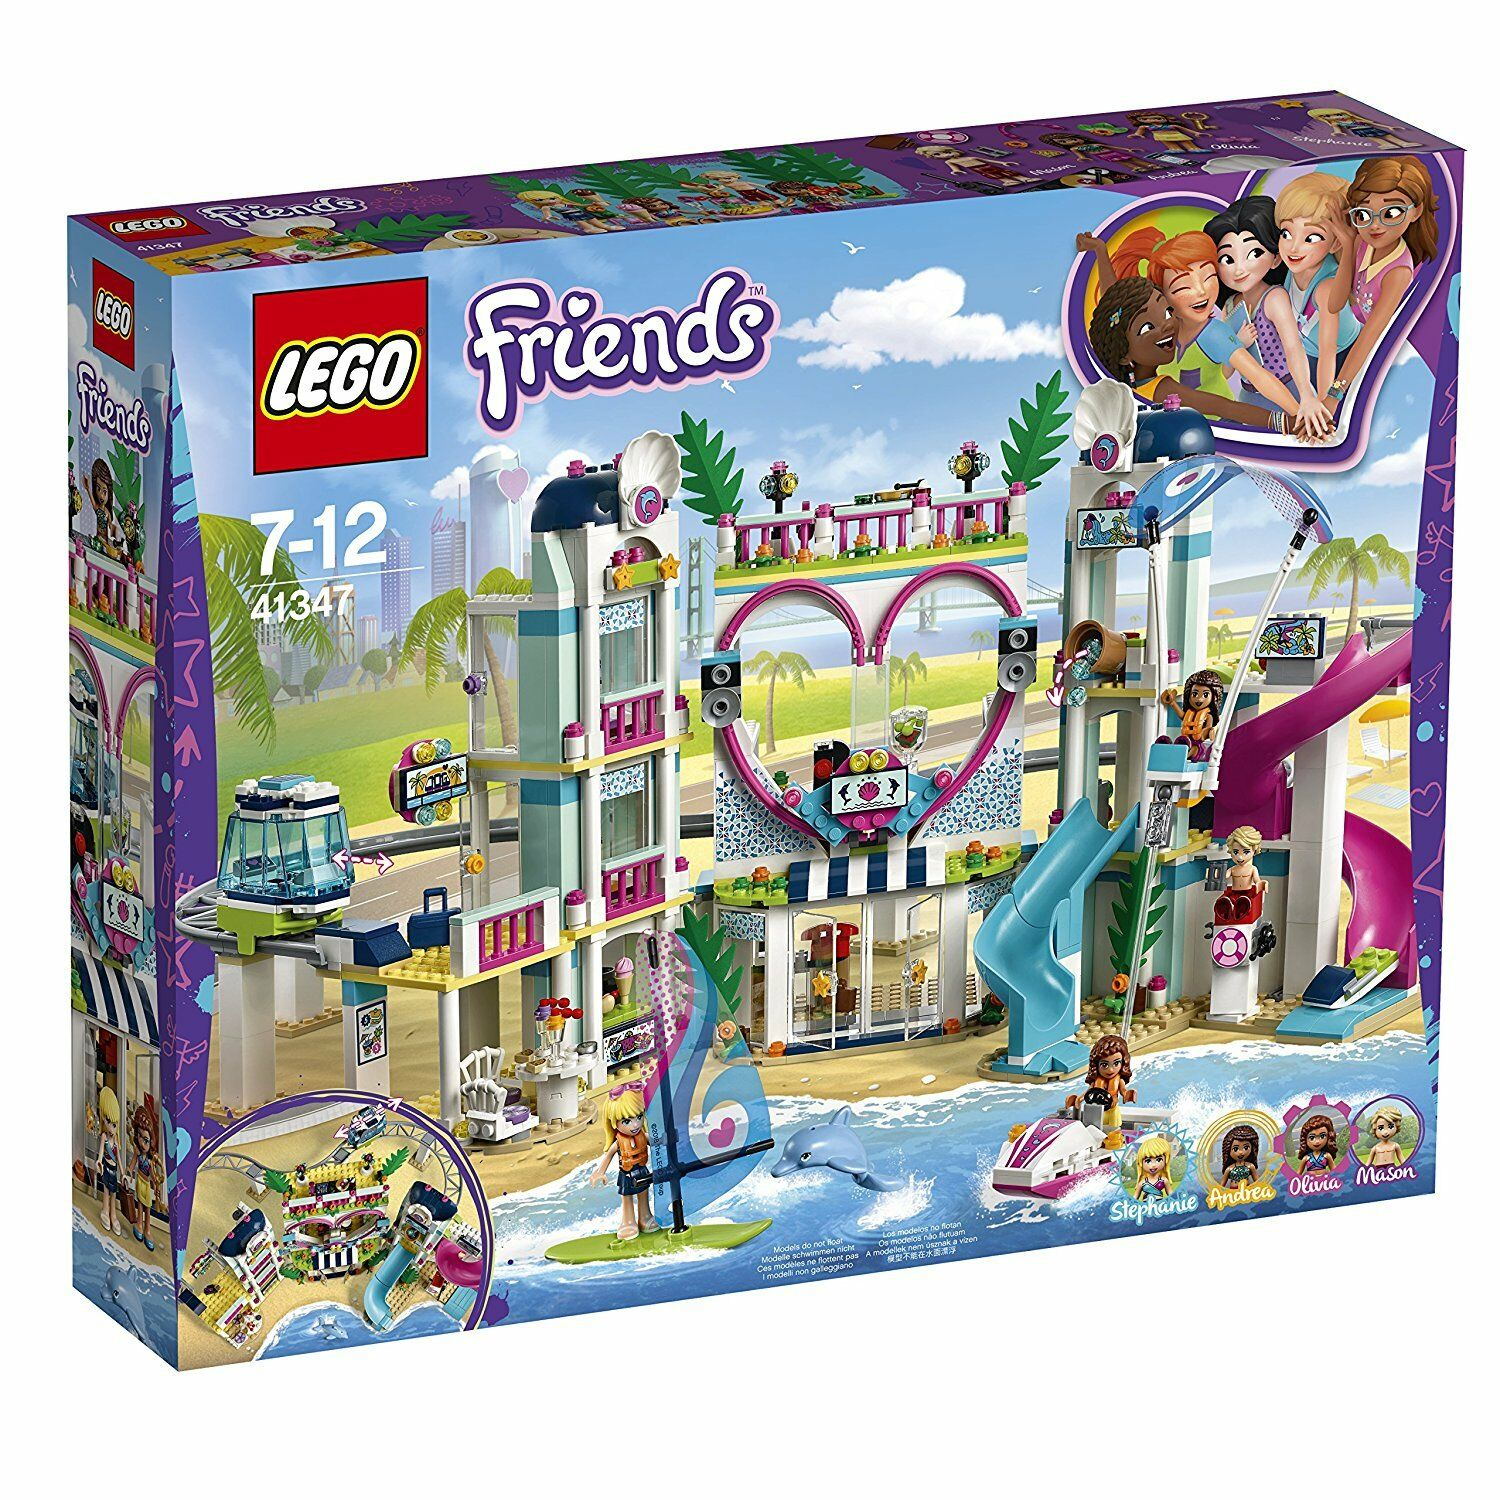 LEGO FRIENDS IL RESORT DI HEARTLAKE CITY 41347 -nuovo-italia